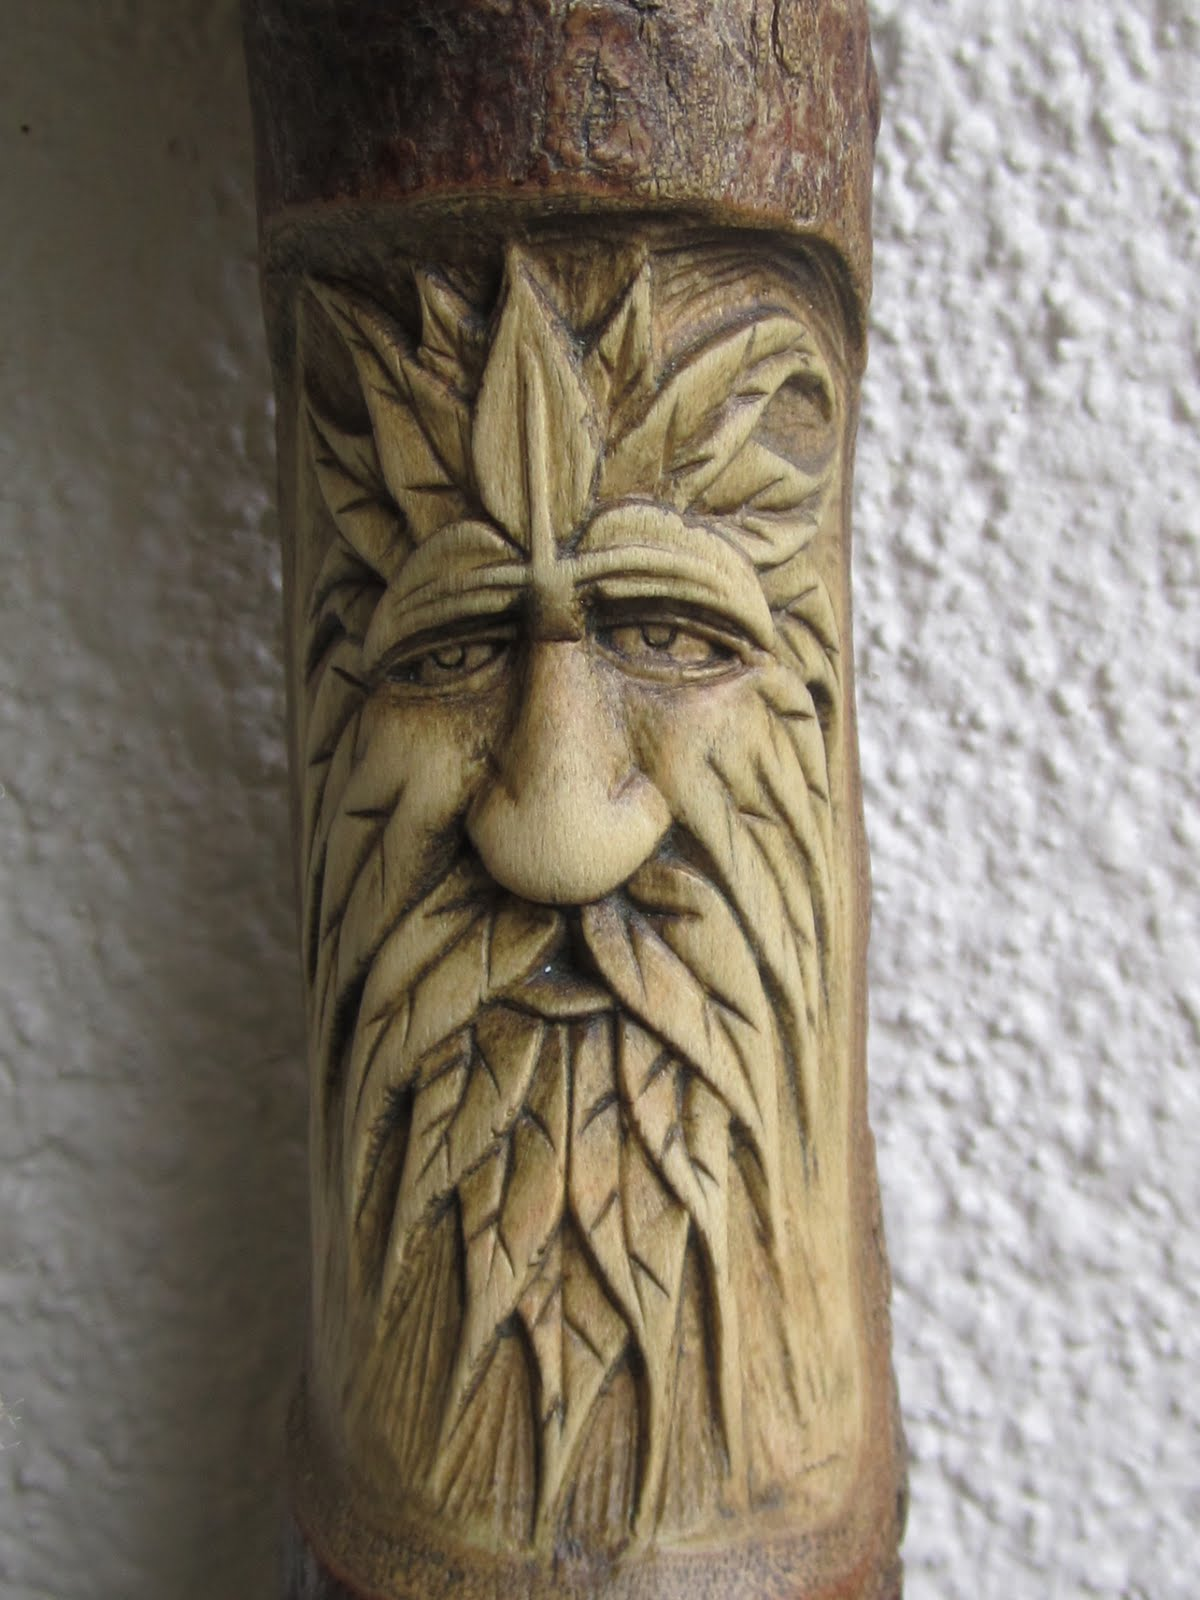 Woodwose carving green man twine holder